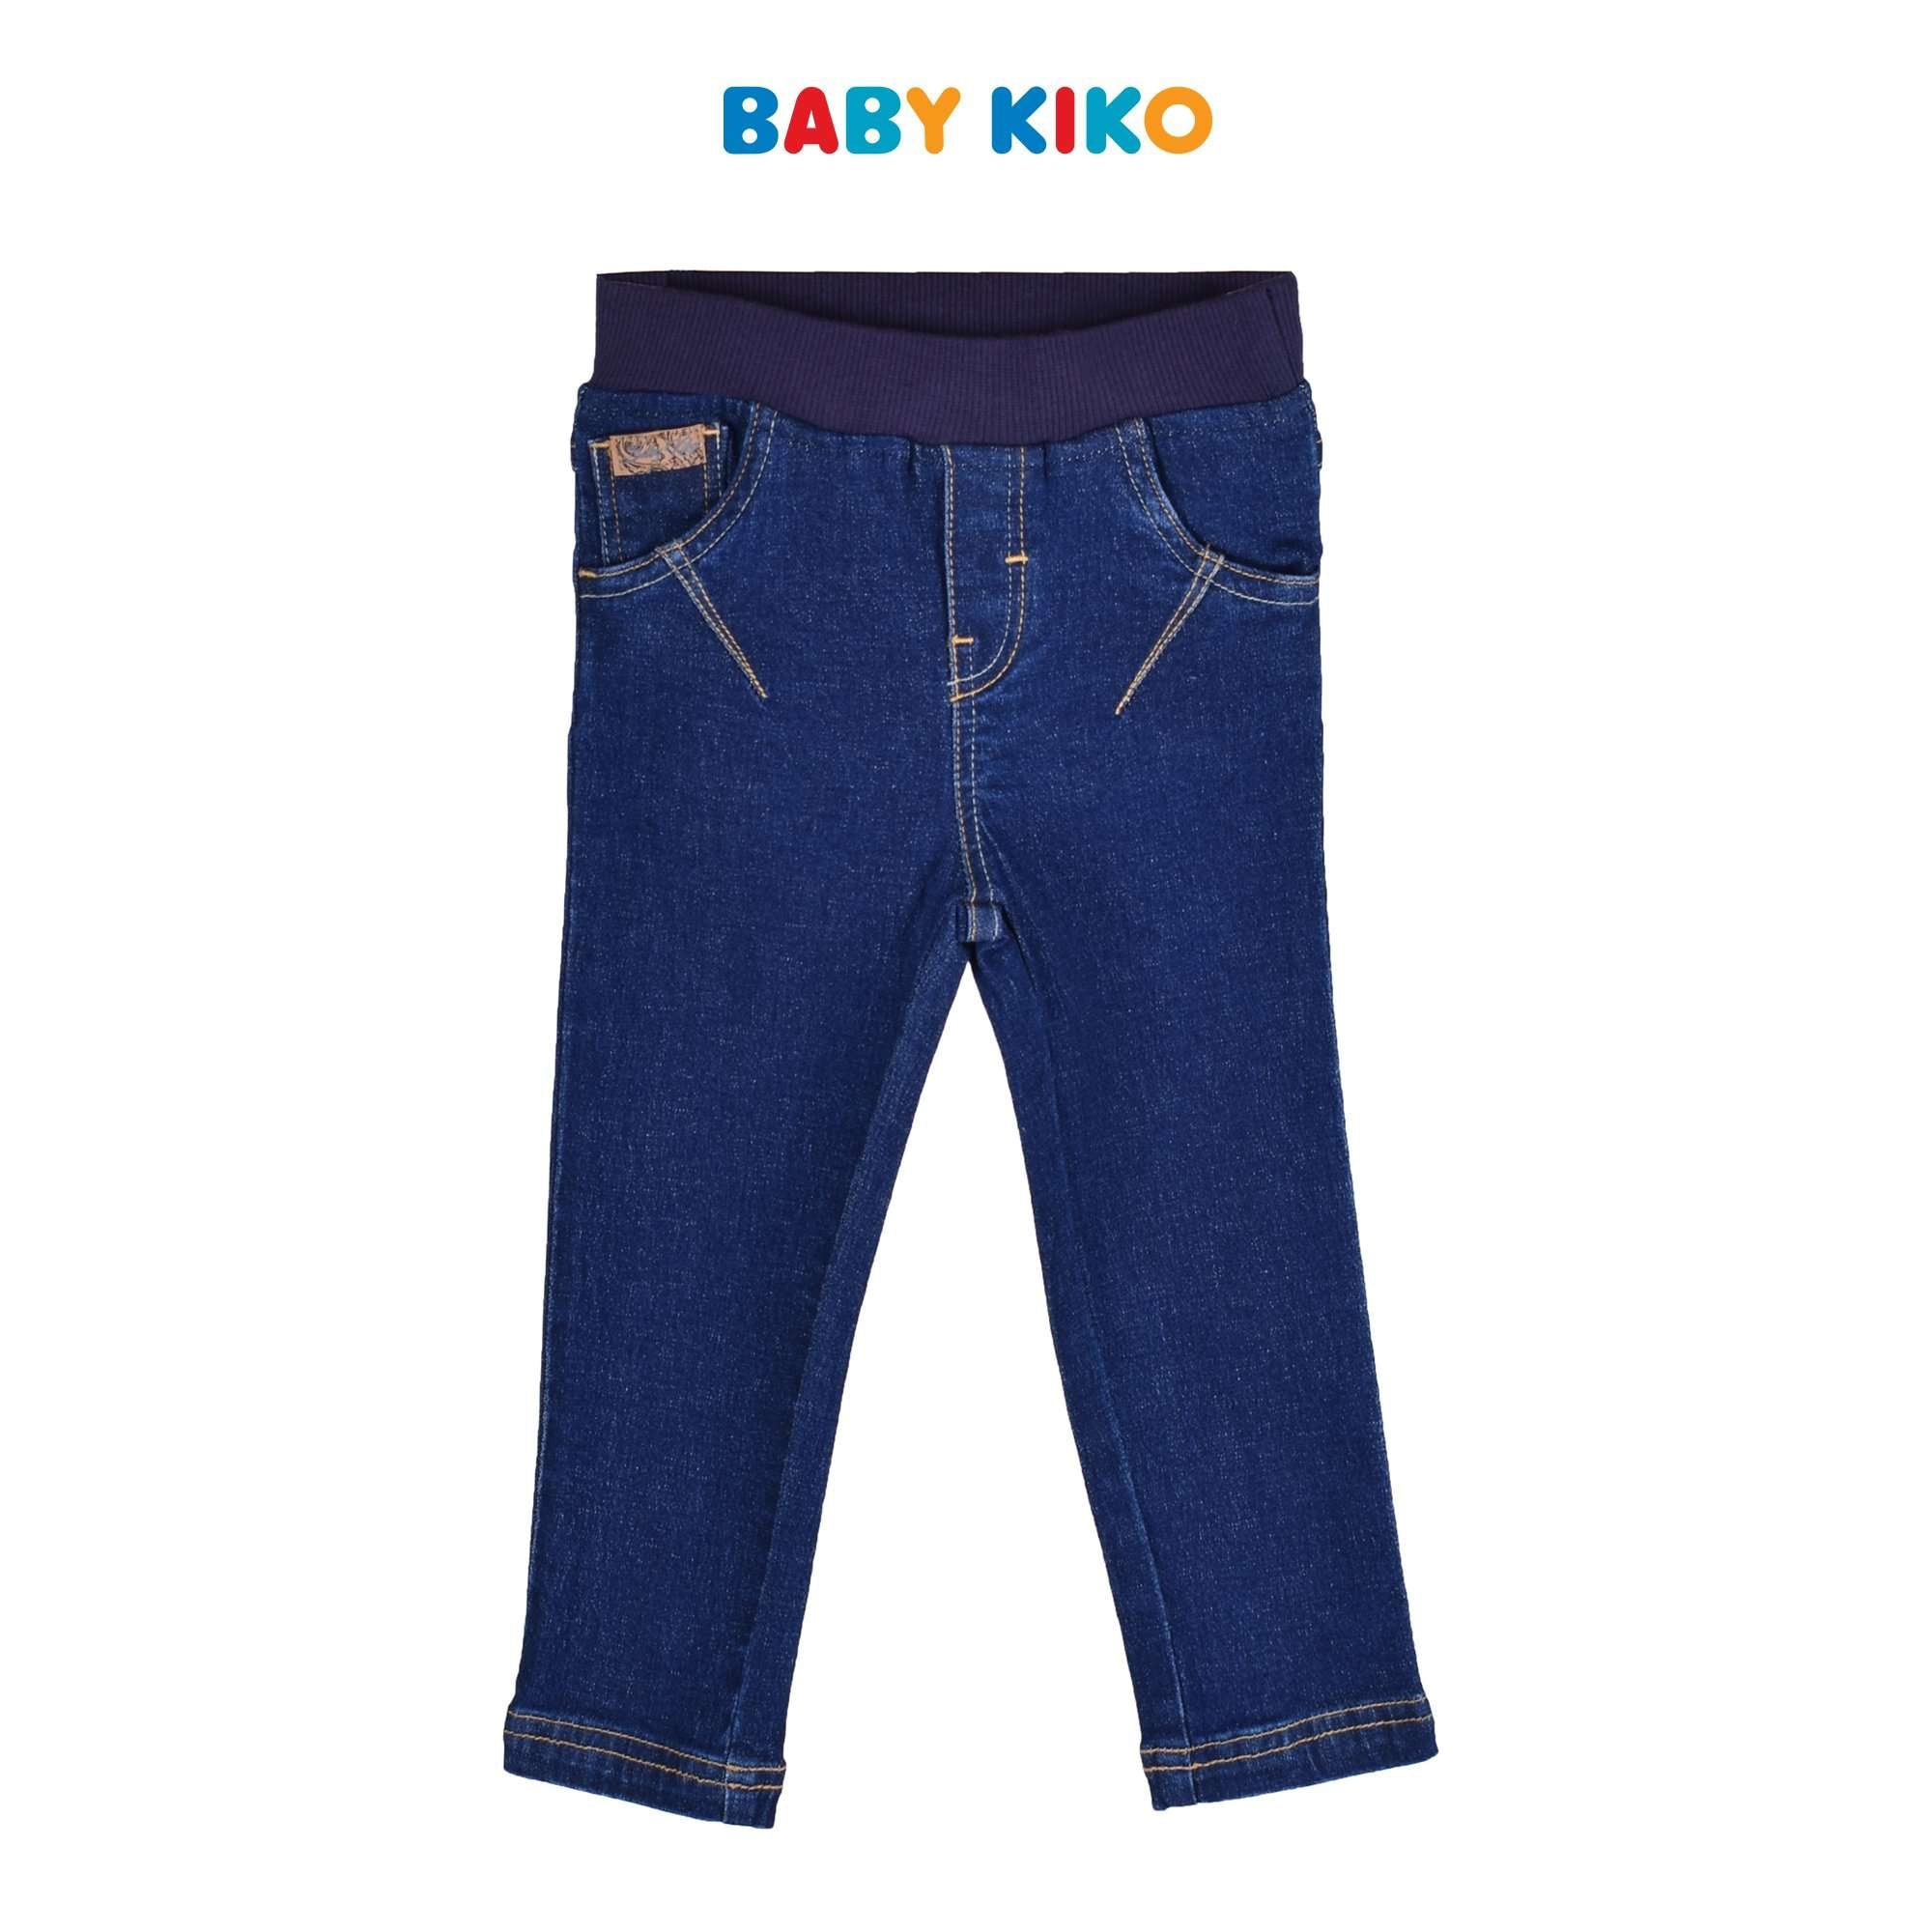 Baby KIKO Toddler Boy Jeans 335117-212 : Buy Baby KIKO online at CMG.MY